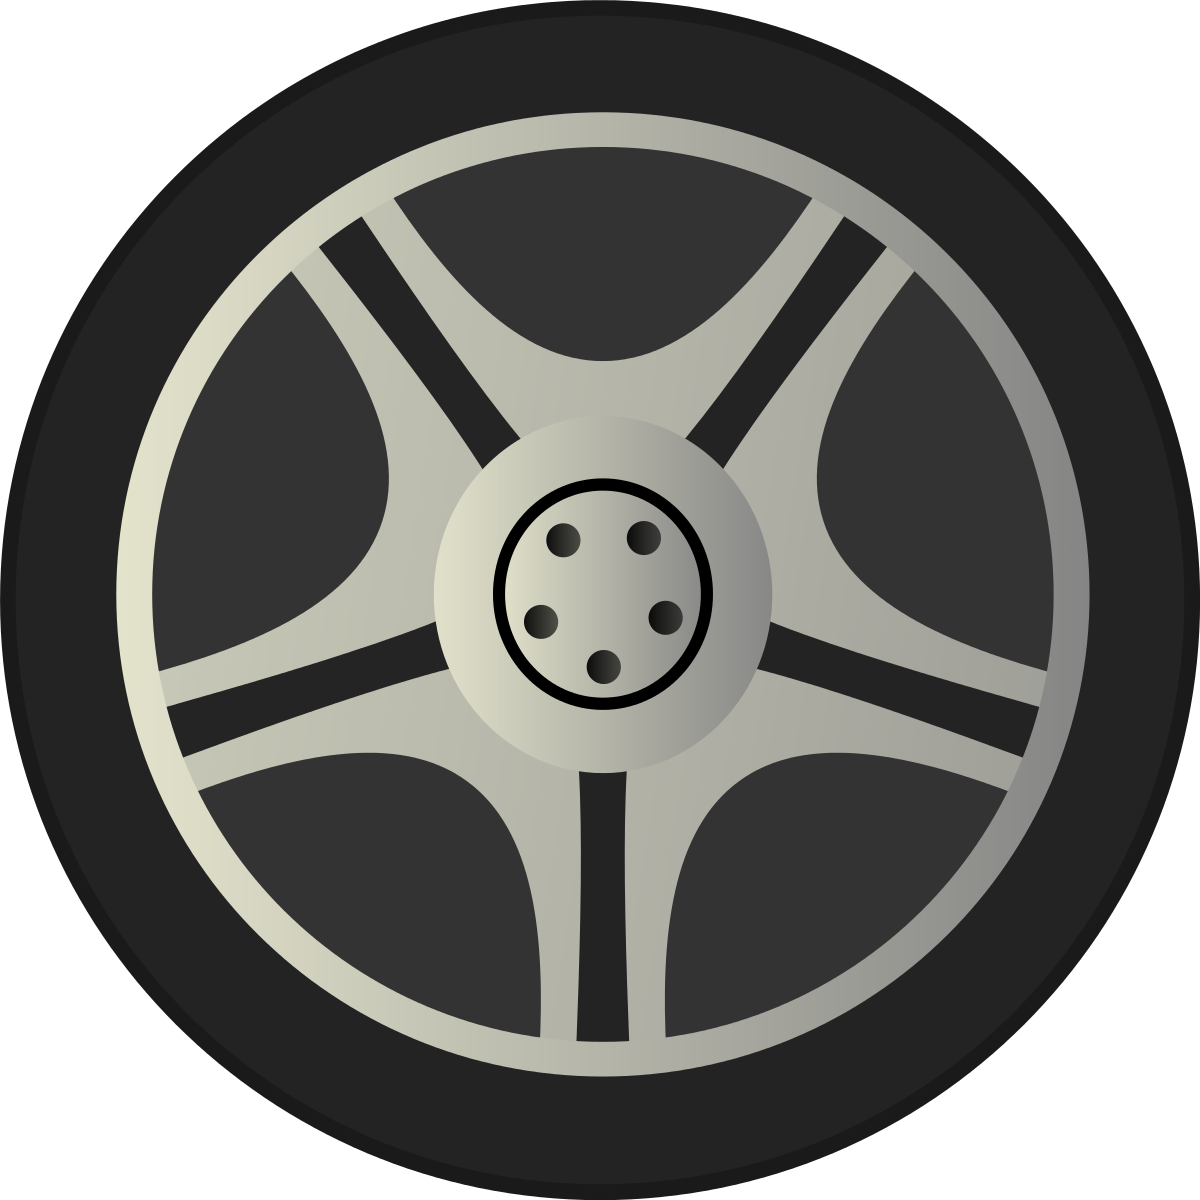 Tires clipart vehicle. Pictures of car clip